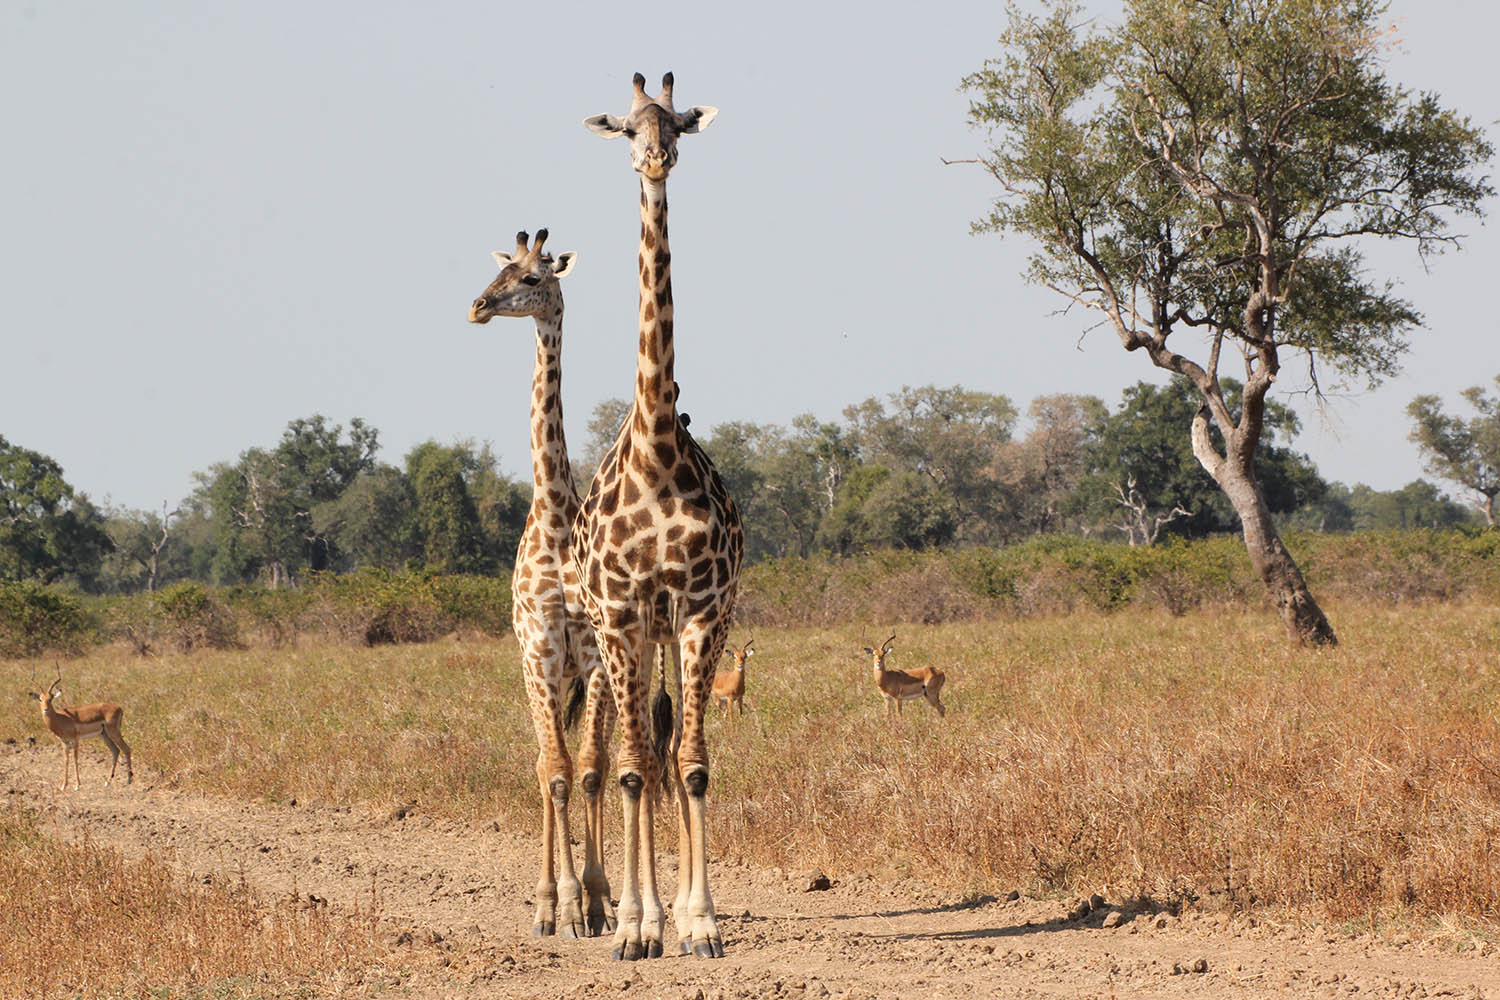 south luangwa national park zambia-national-parks-malawian-style-malawi-adventures-experiences-specialist-tour-operator-wildlife-giraffe